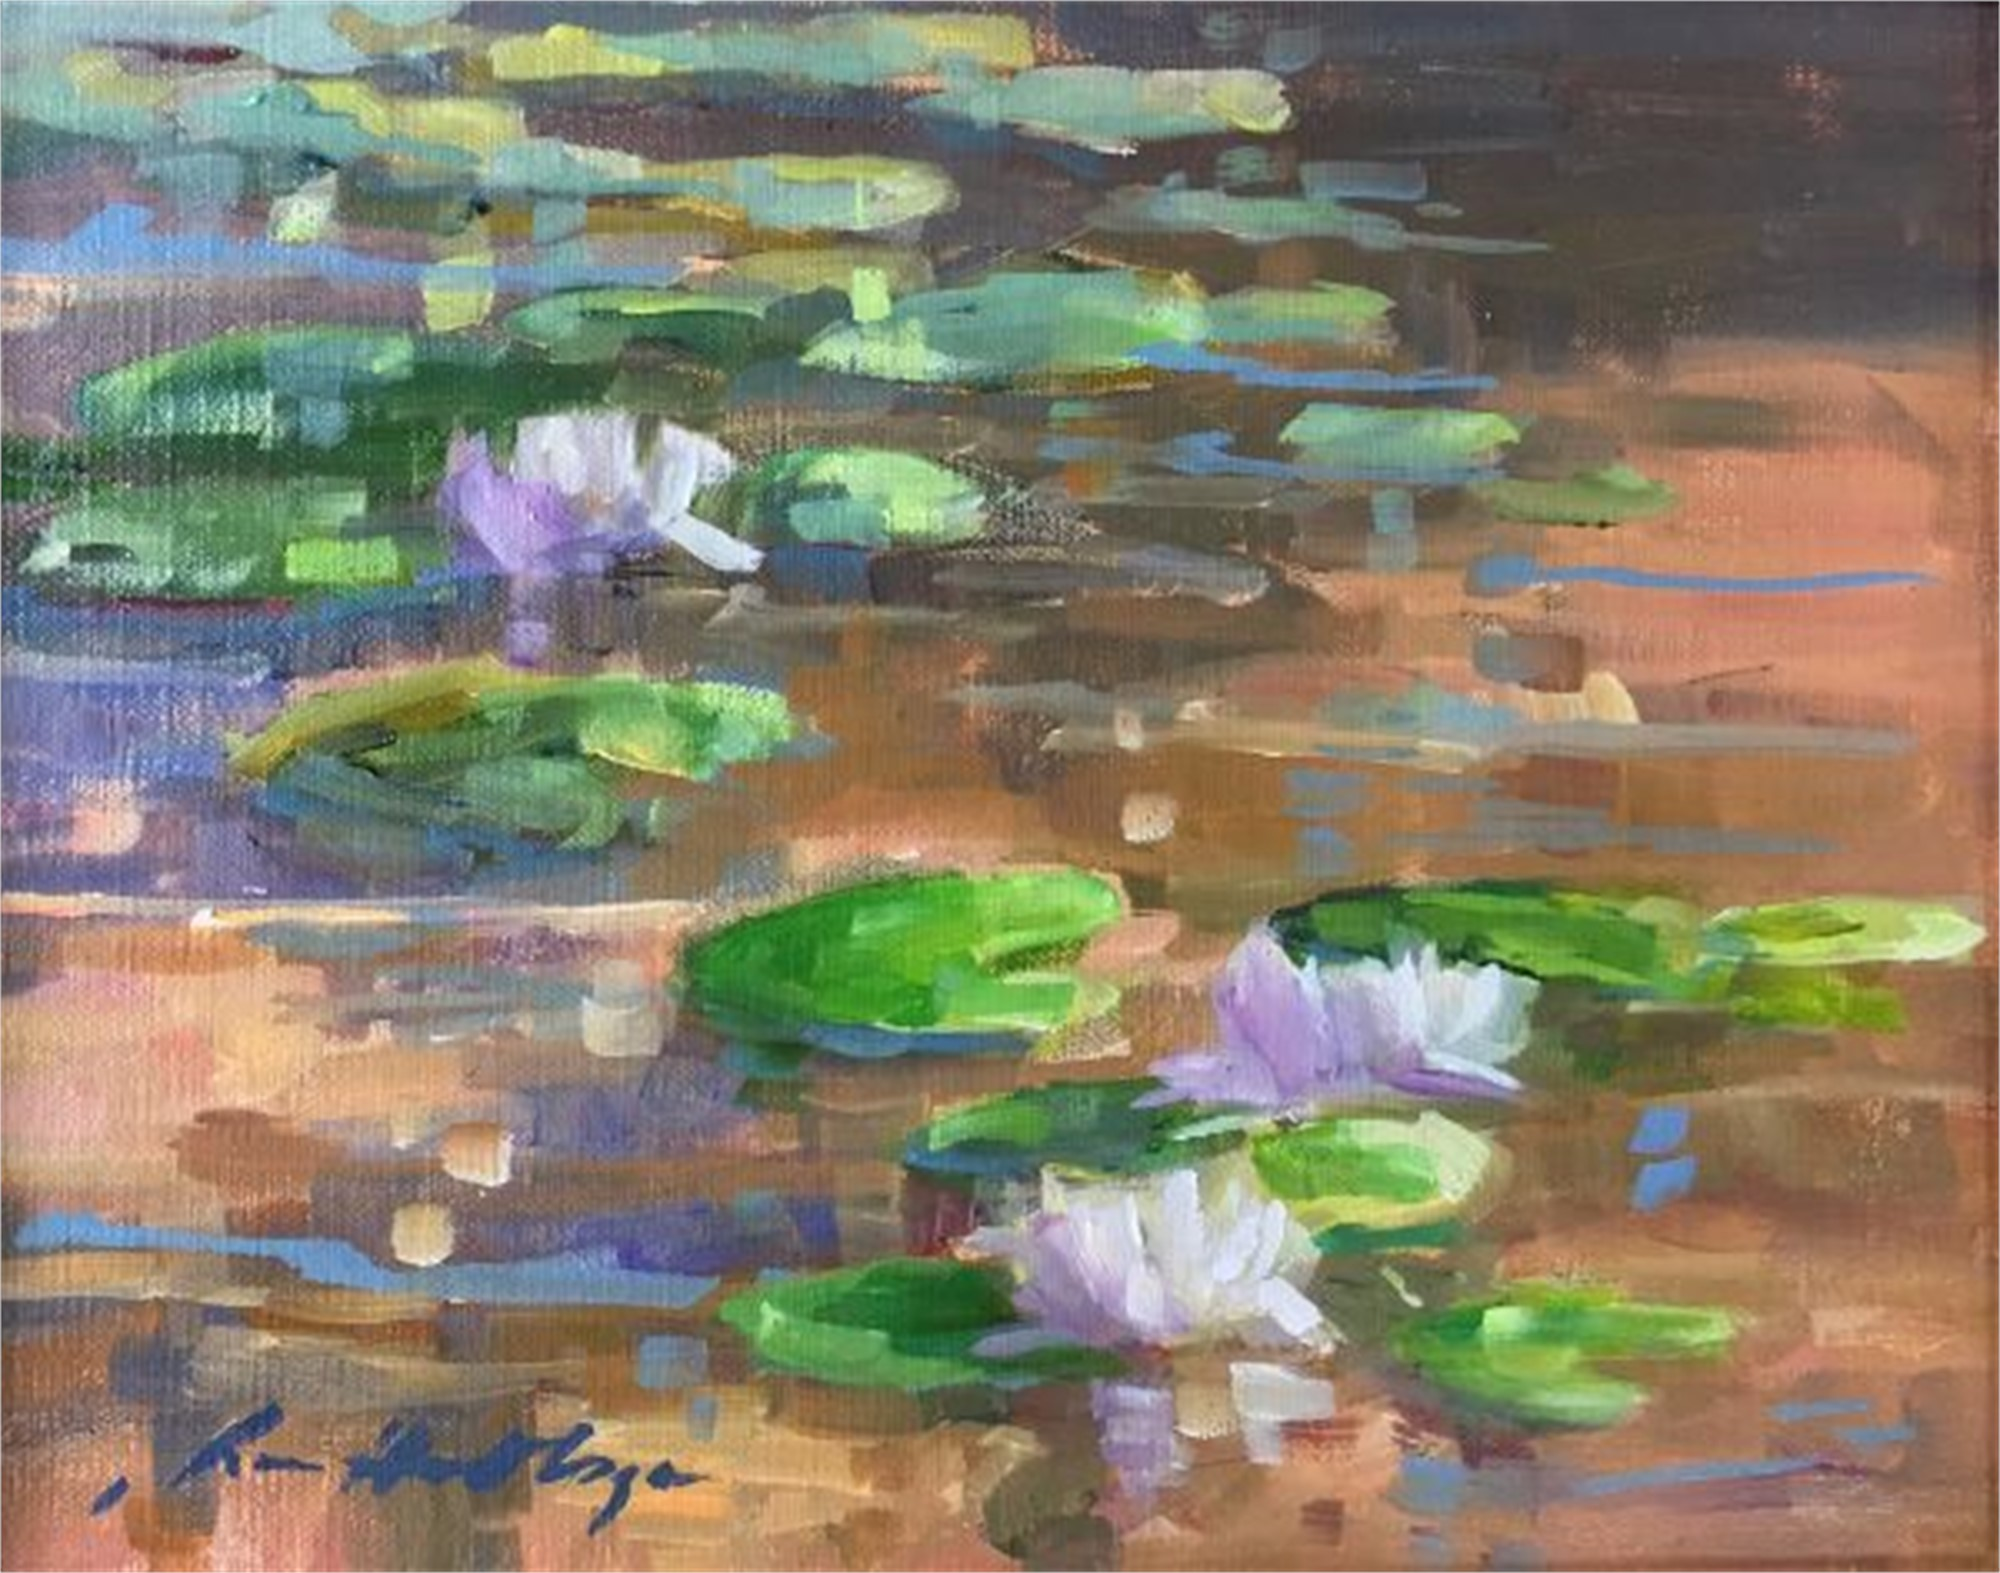 Nymphaea At Noon, Cashiers, NC by Karen Hewitt Hagan